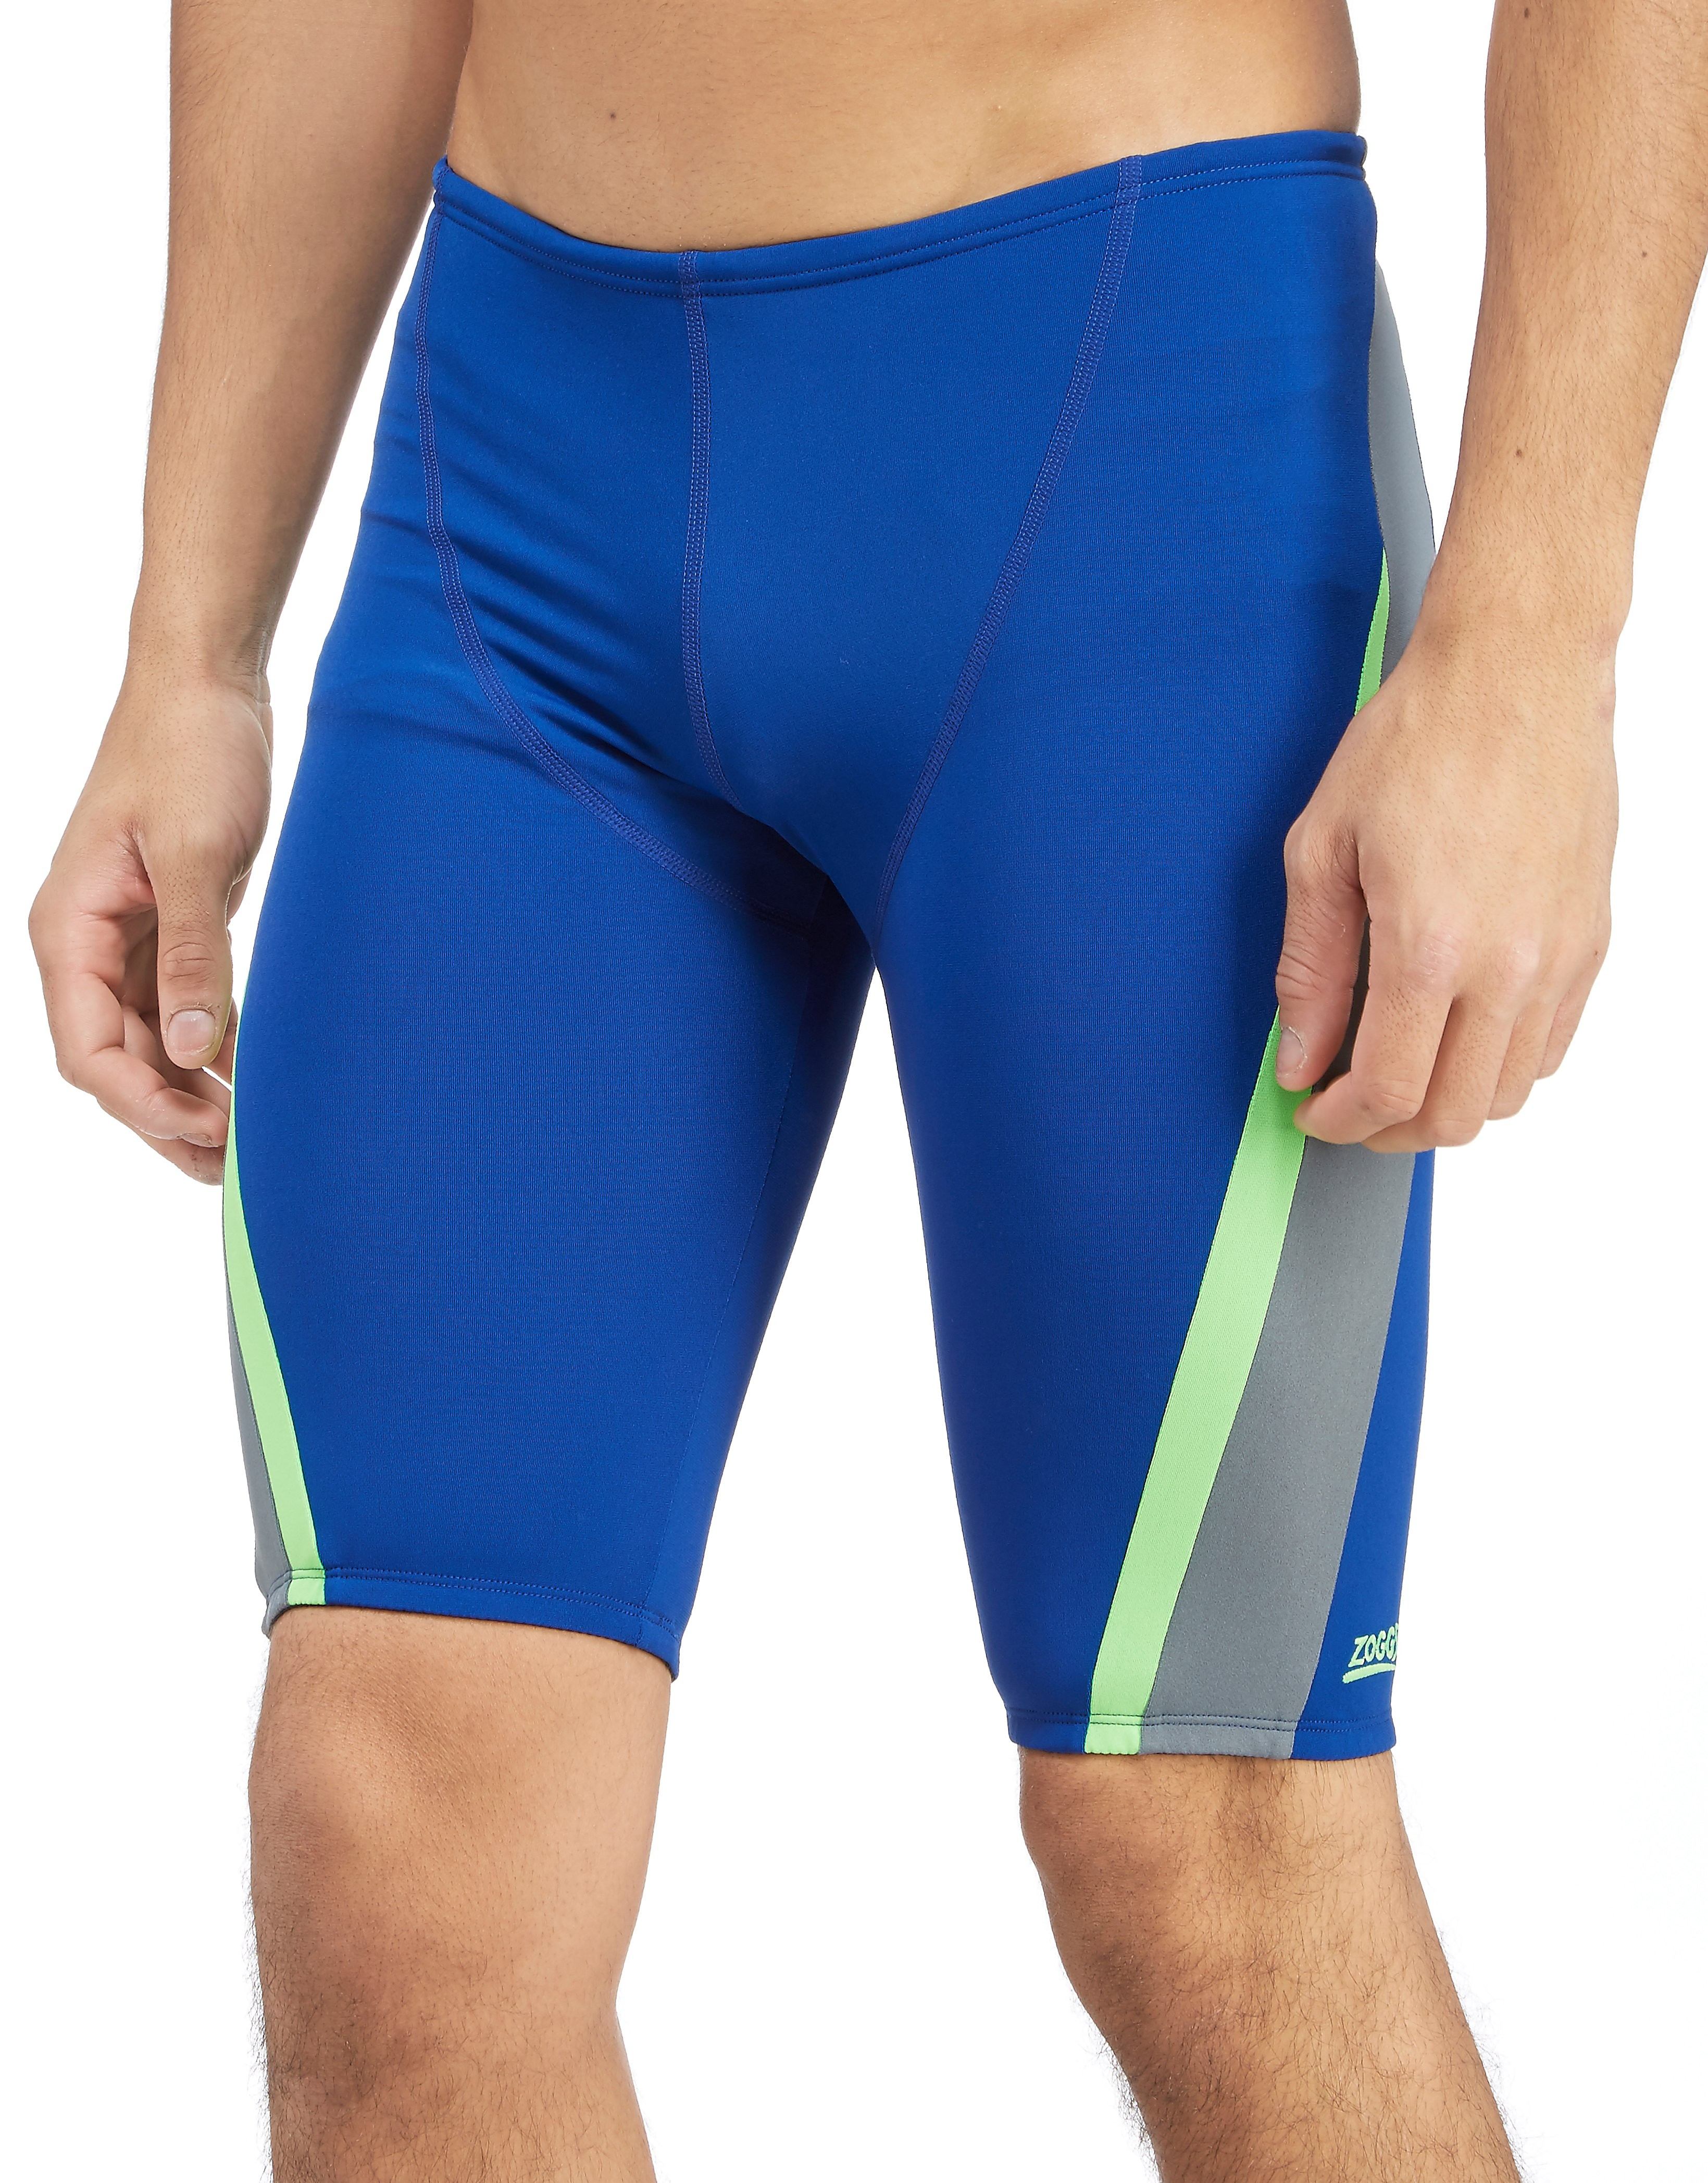 Zoggs Eaton Jammer Shorts